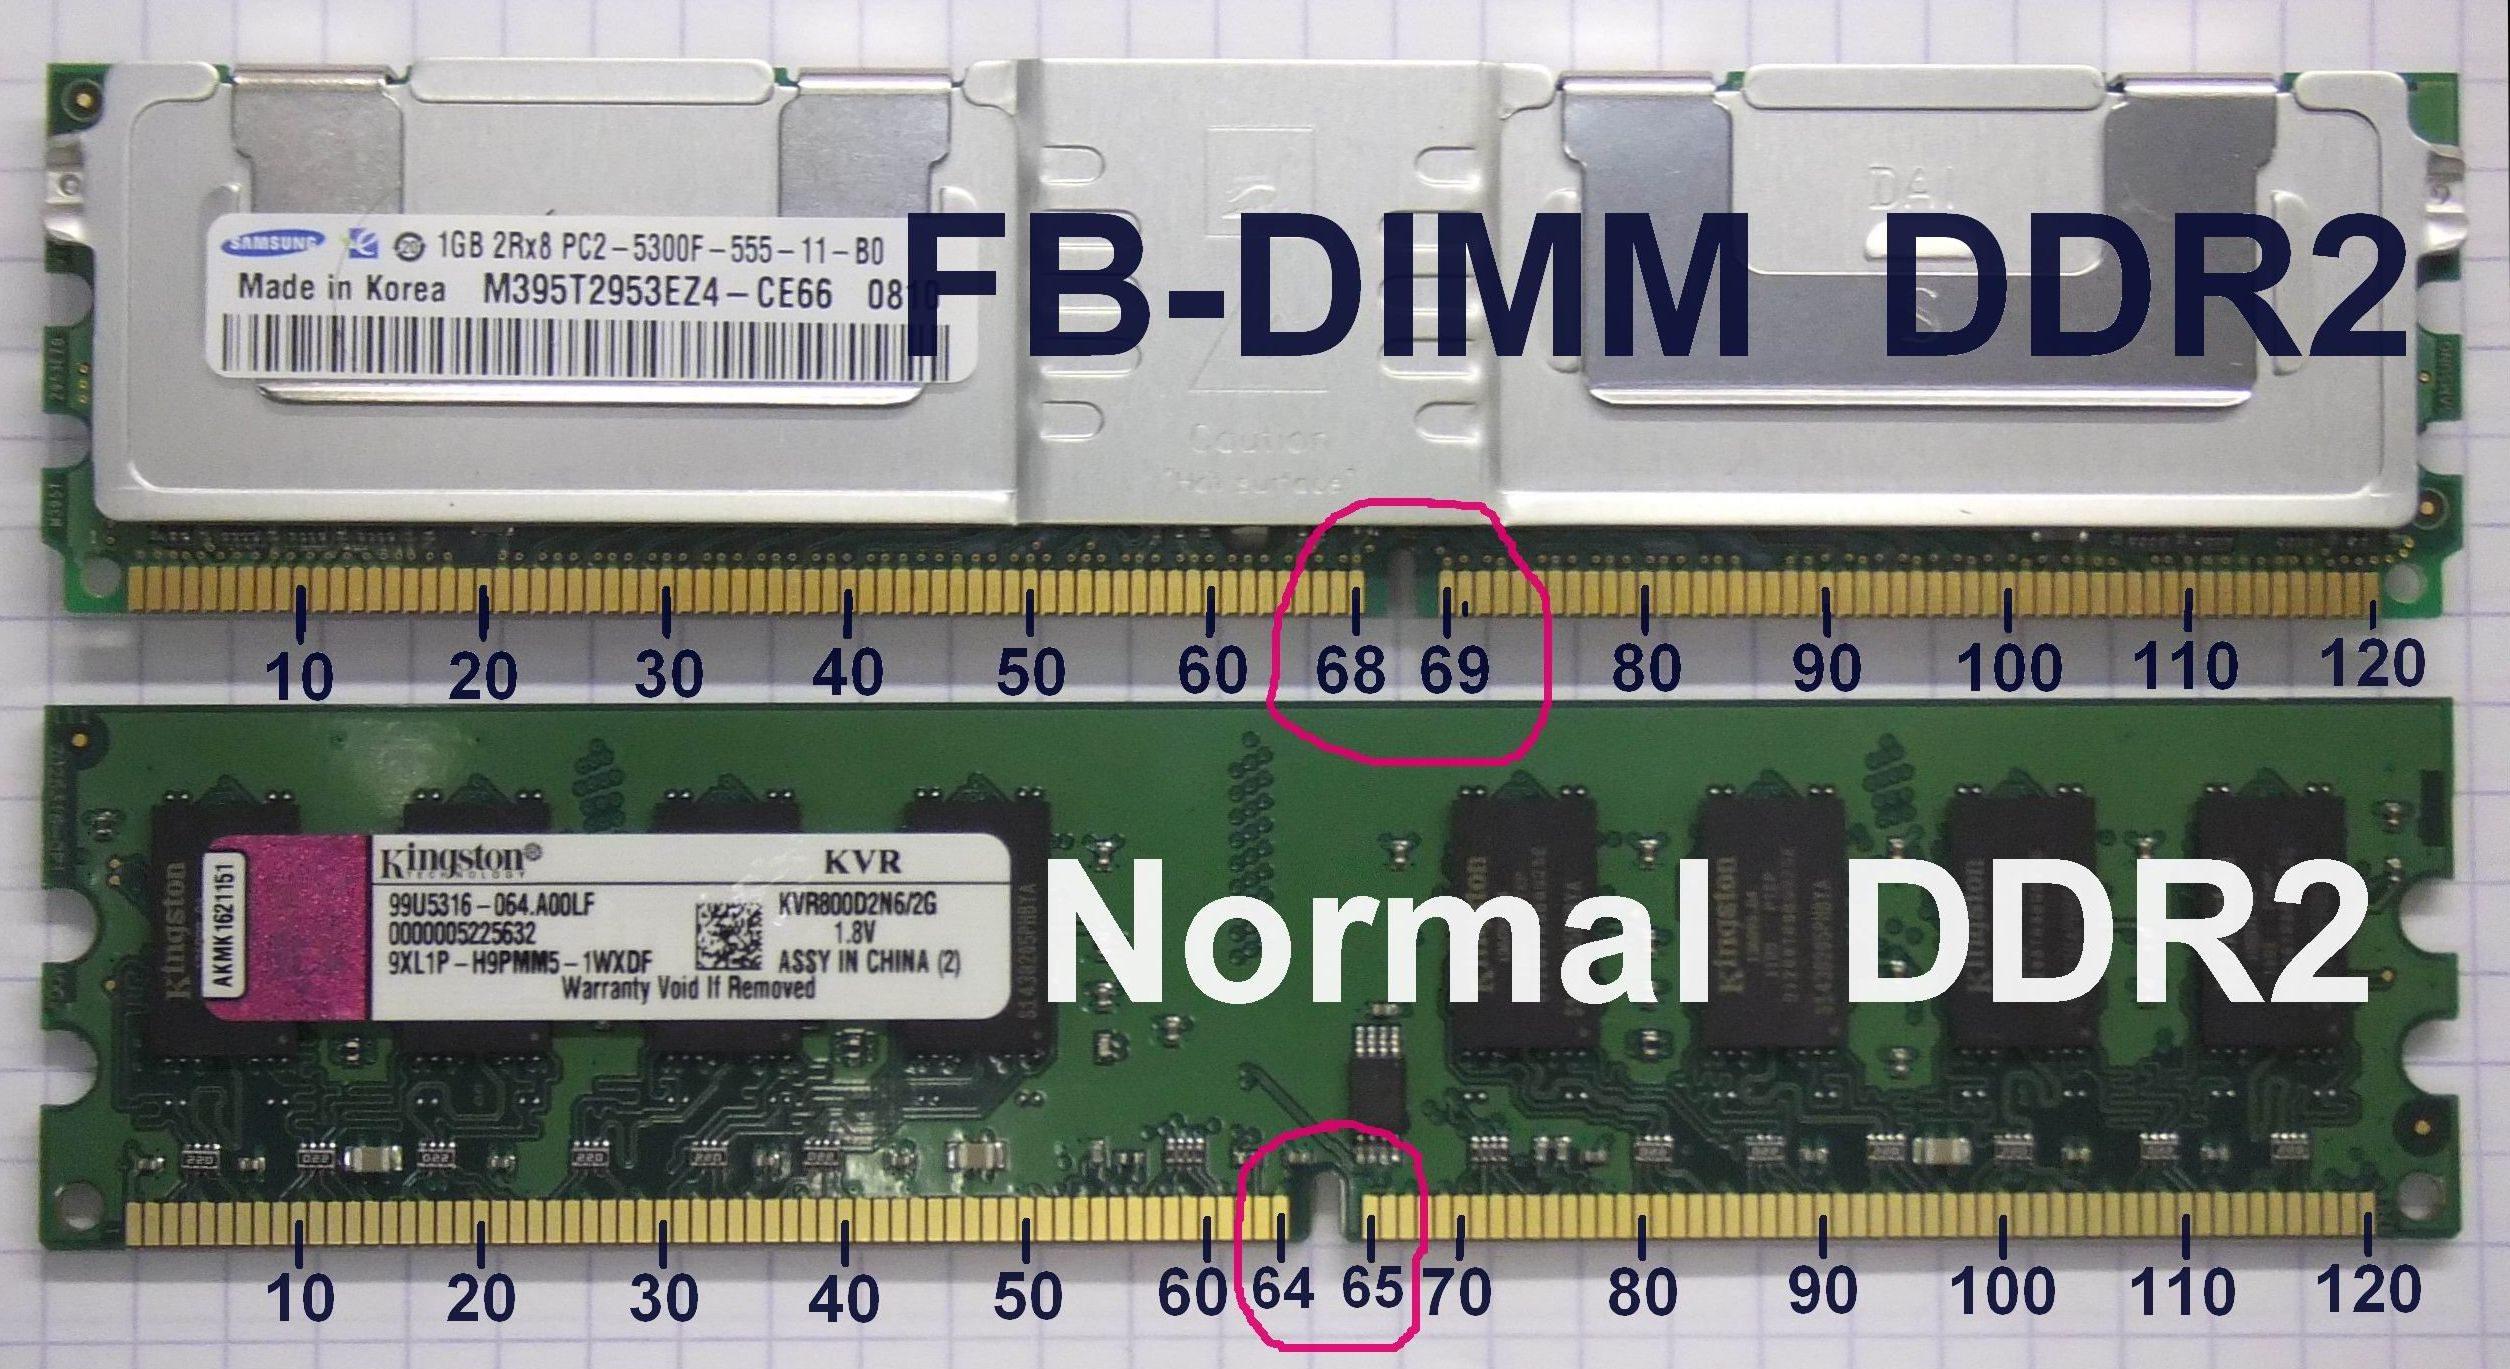 https://upload.wikimedia.org/wikipedia/commons/8/83/FB-DIMM_DDR2_vs._DDR2_photo_with_pin_count.jpg